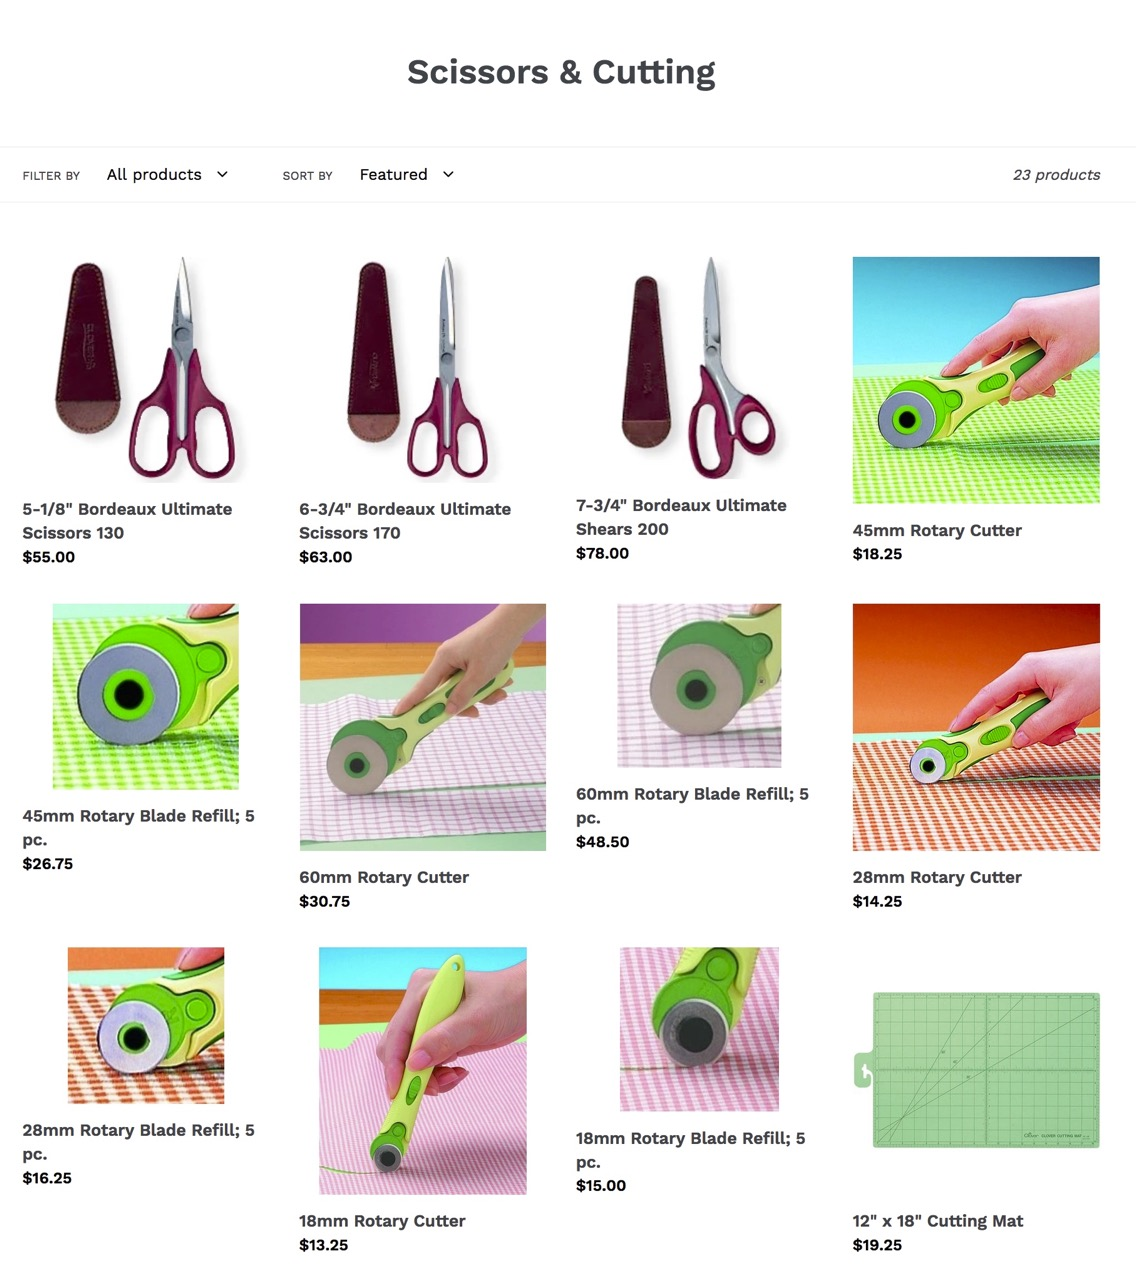 Shop Sewing Scissors and Rotary Cutting Supplies at ShopNZP.com